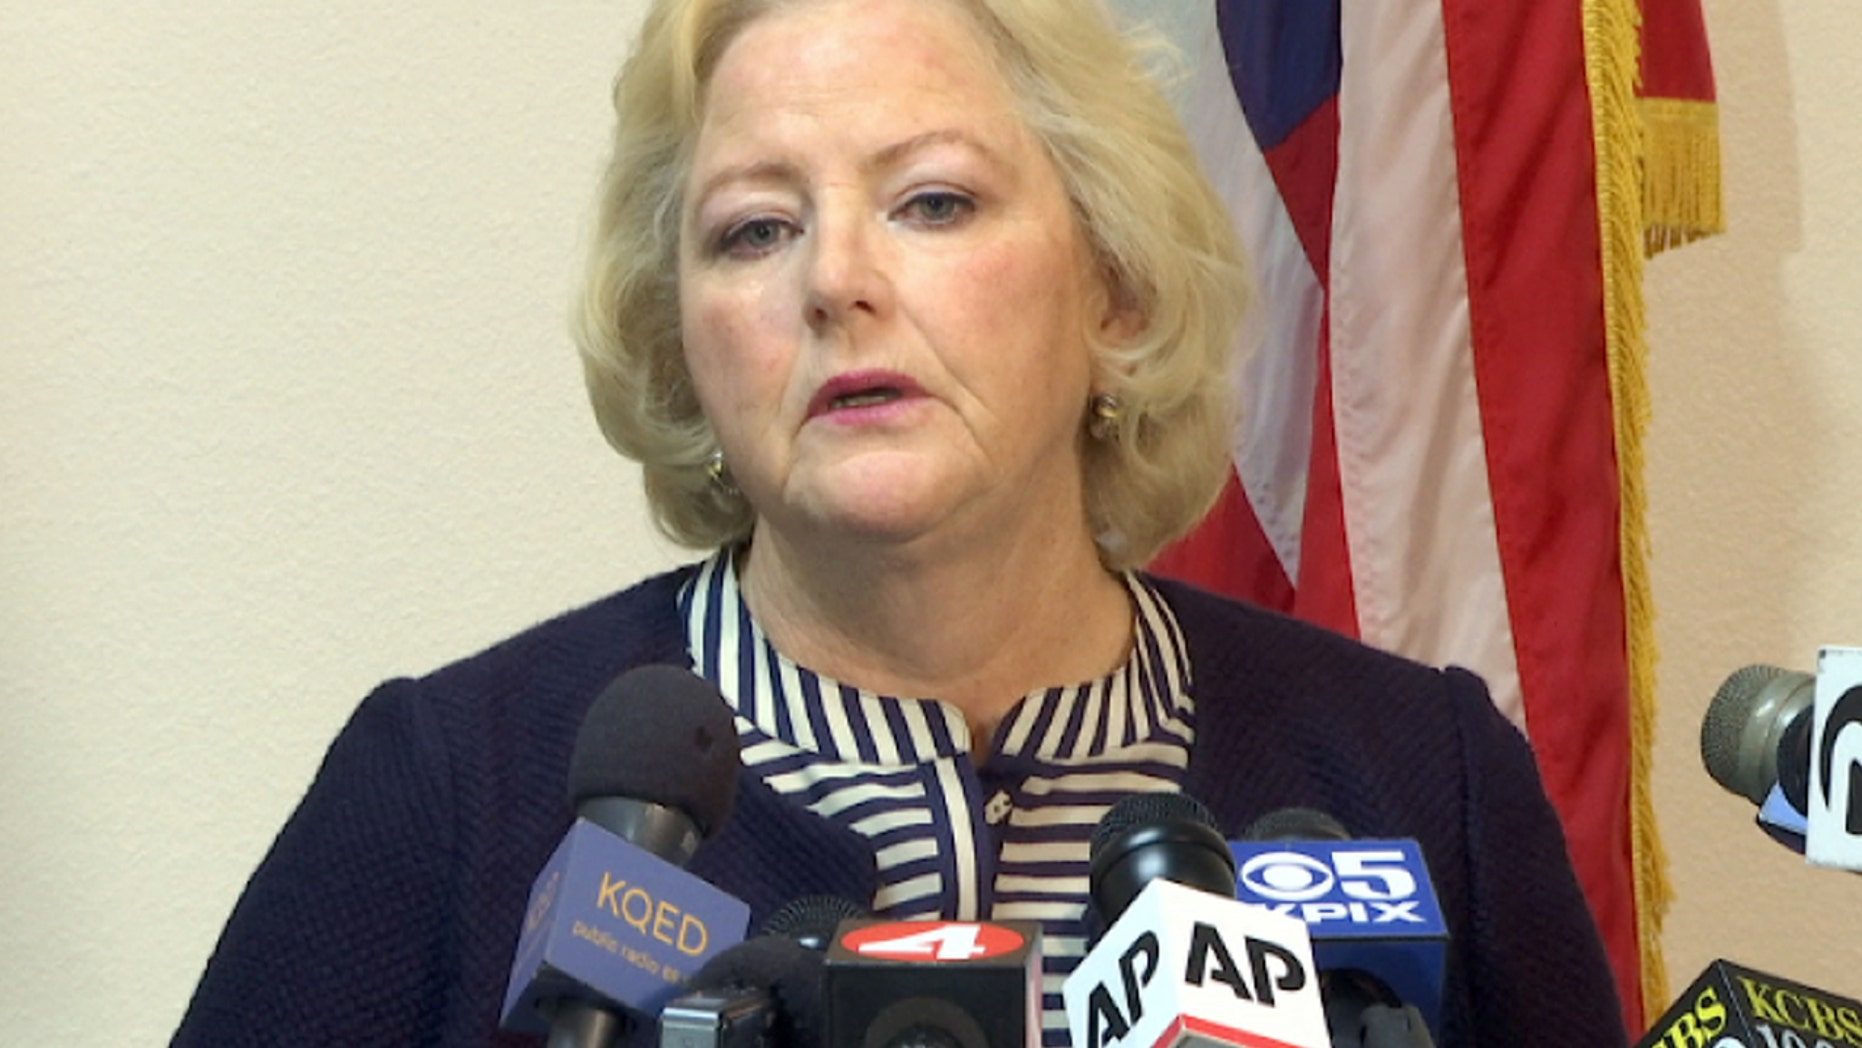 Sept. 9, 2016: Alameda County District Attorney Nancy O'Malley announces that her office will charge seven current and former San Francisco Bay Area police officers in a sexual misconduct scandal at a news conference in Oakland, Calif.